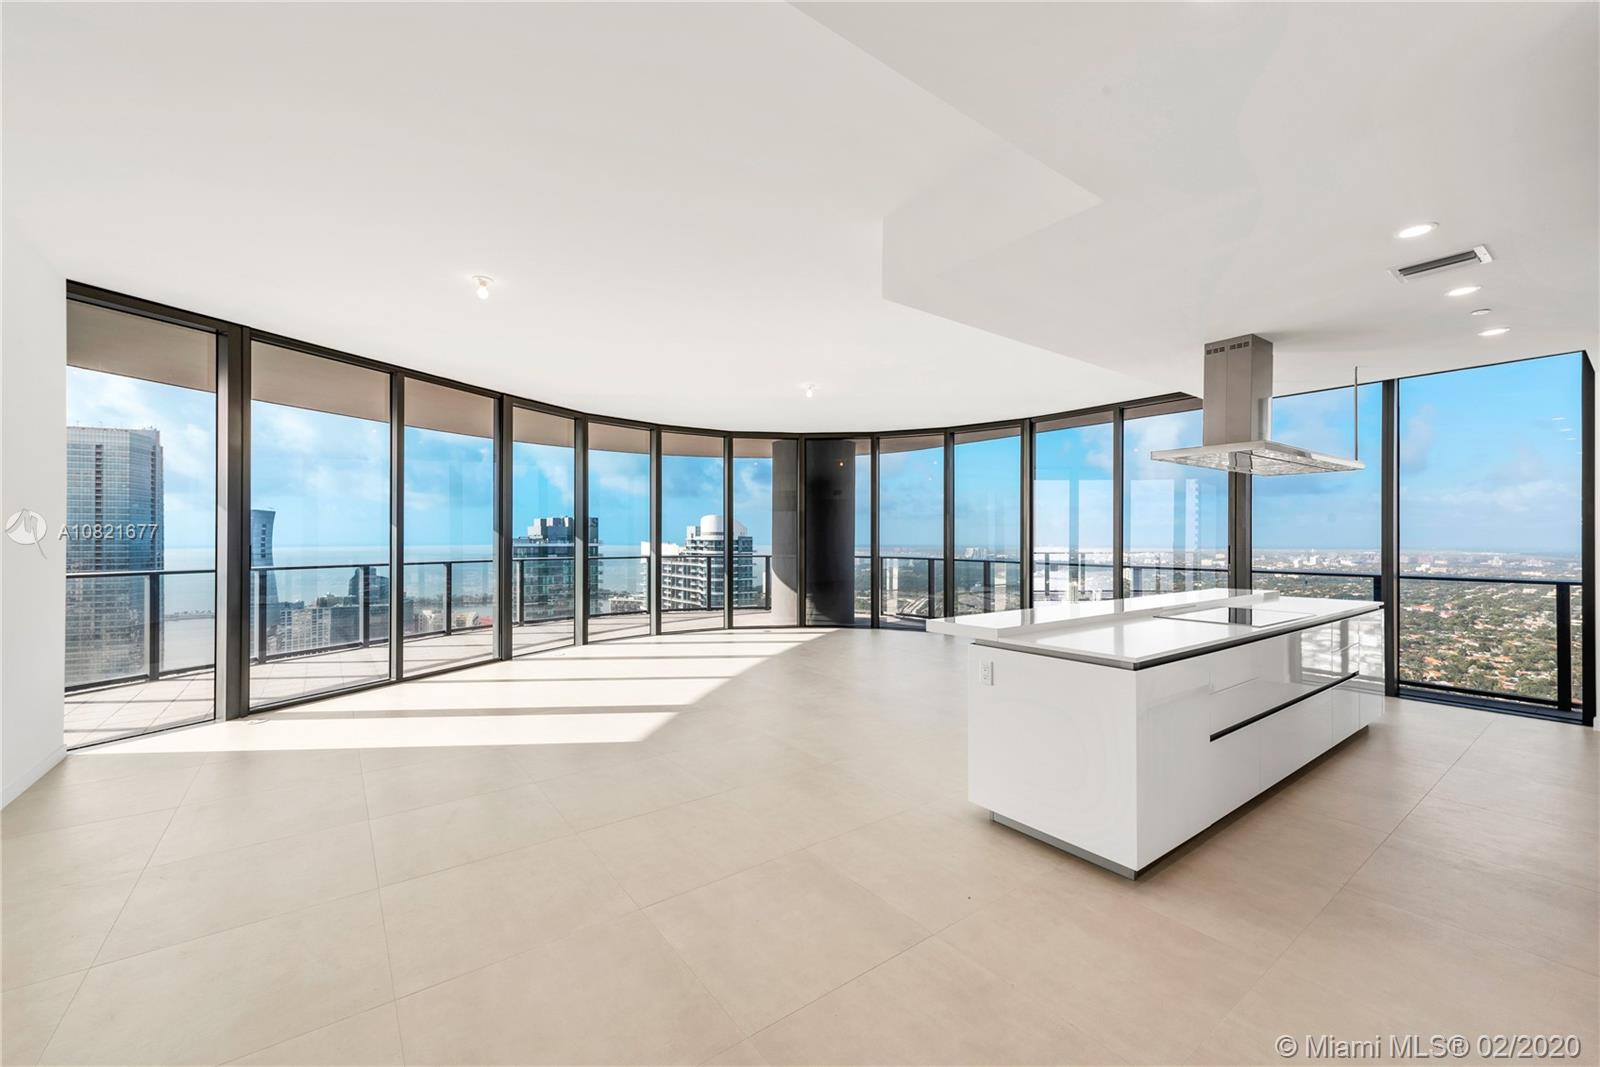 Worldclass views from this 3 Bed/3.5 Bath Lower Penthouse at Brickell Flatiron with higher ceilings.  Italian Porcelain floors, hidden hinge doors, Snaidero kitchens, and a great floorplan create an incredible home in the sky.  Come see the rooftop pool, spa and fitness center with Pilates/yoga and aerobics studio, private steam and sauna facilities.  Some of the other amenties include a children's play area, game room, movie theatre and recreation rooms. All in the heart of Brickell.